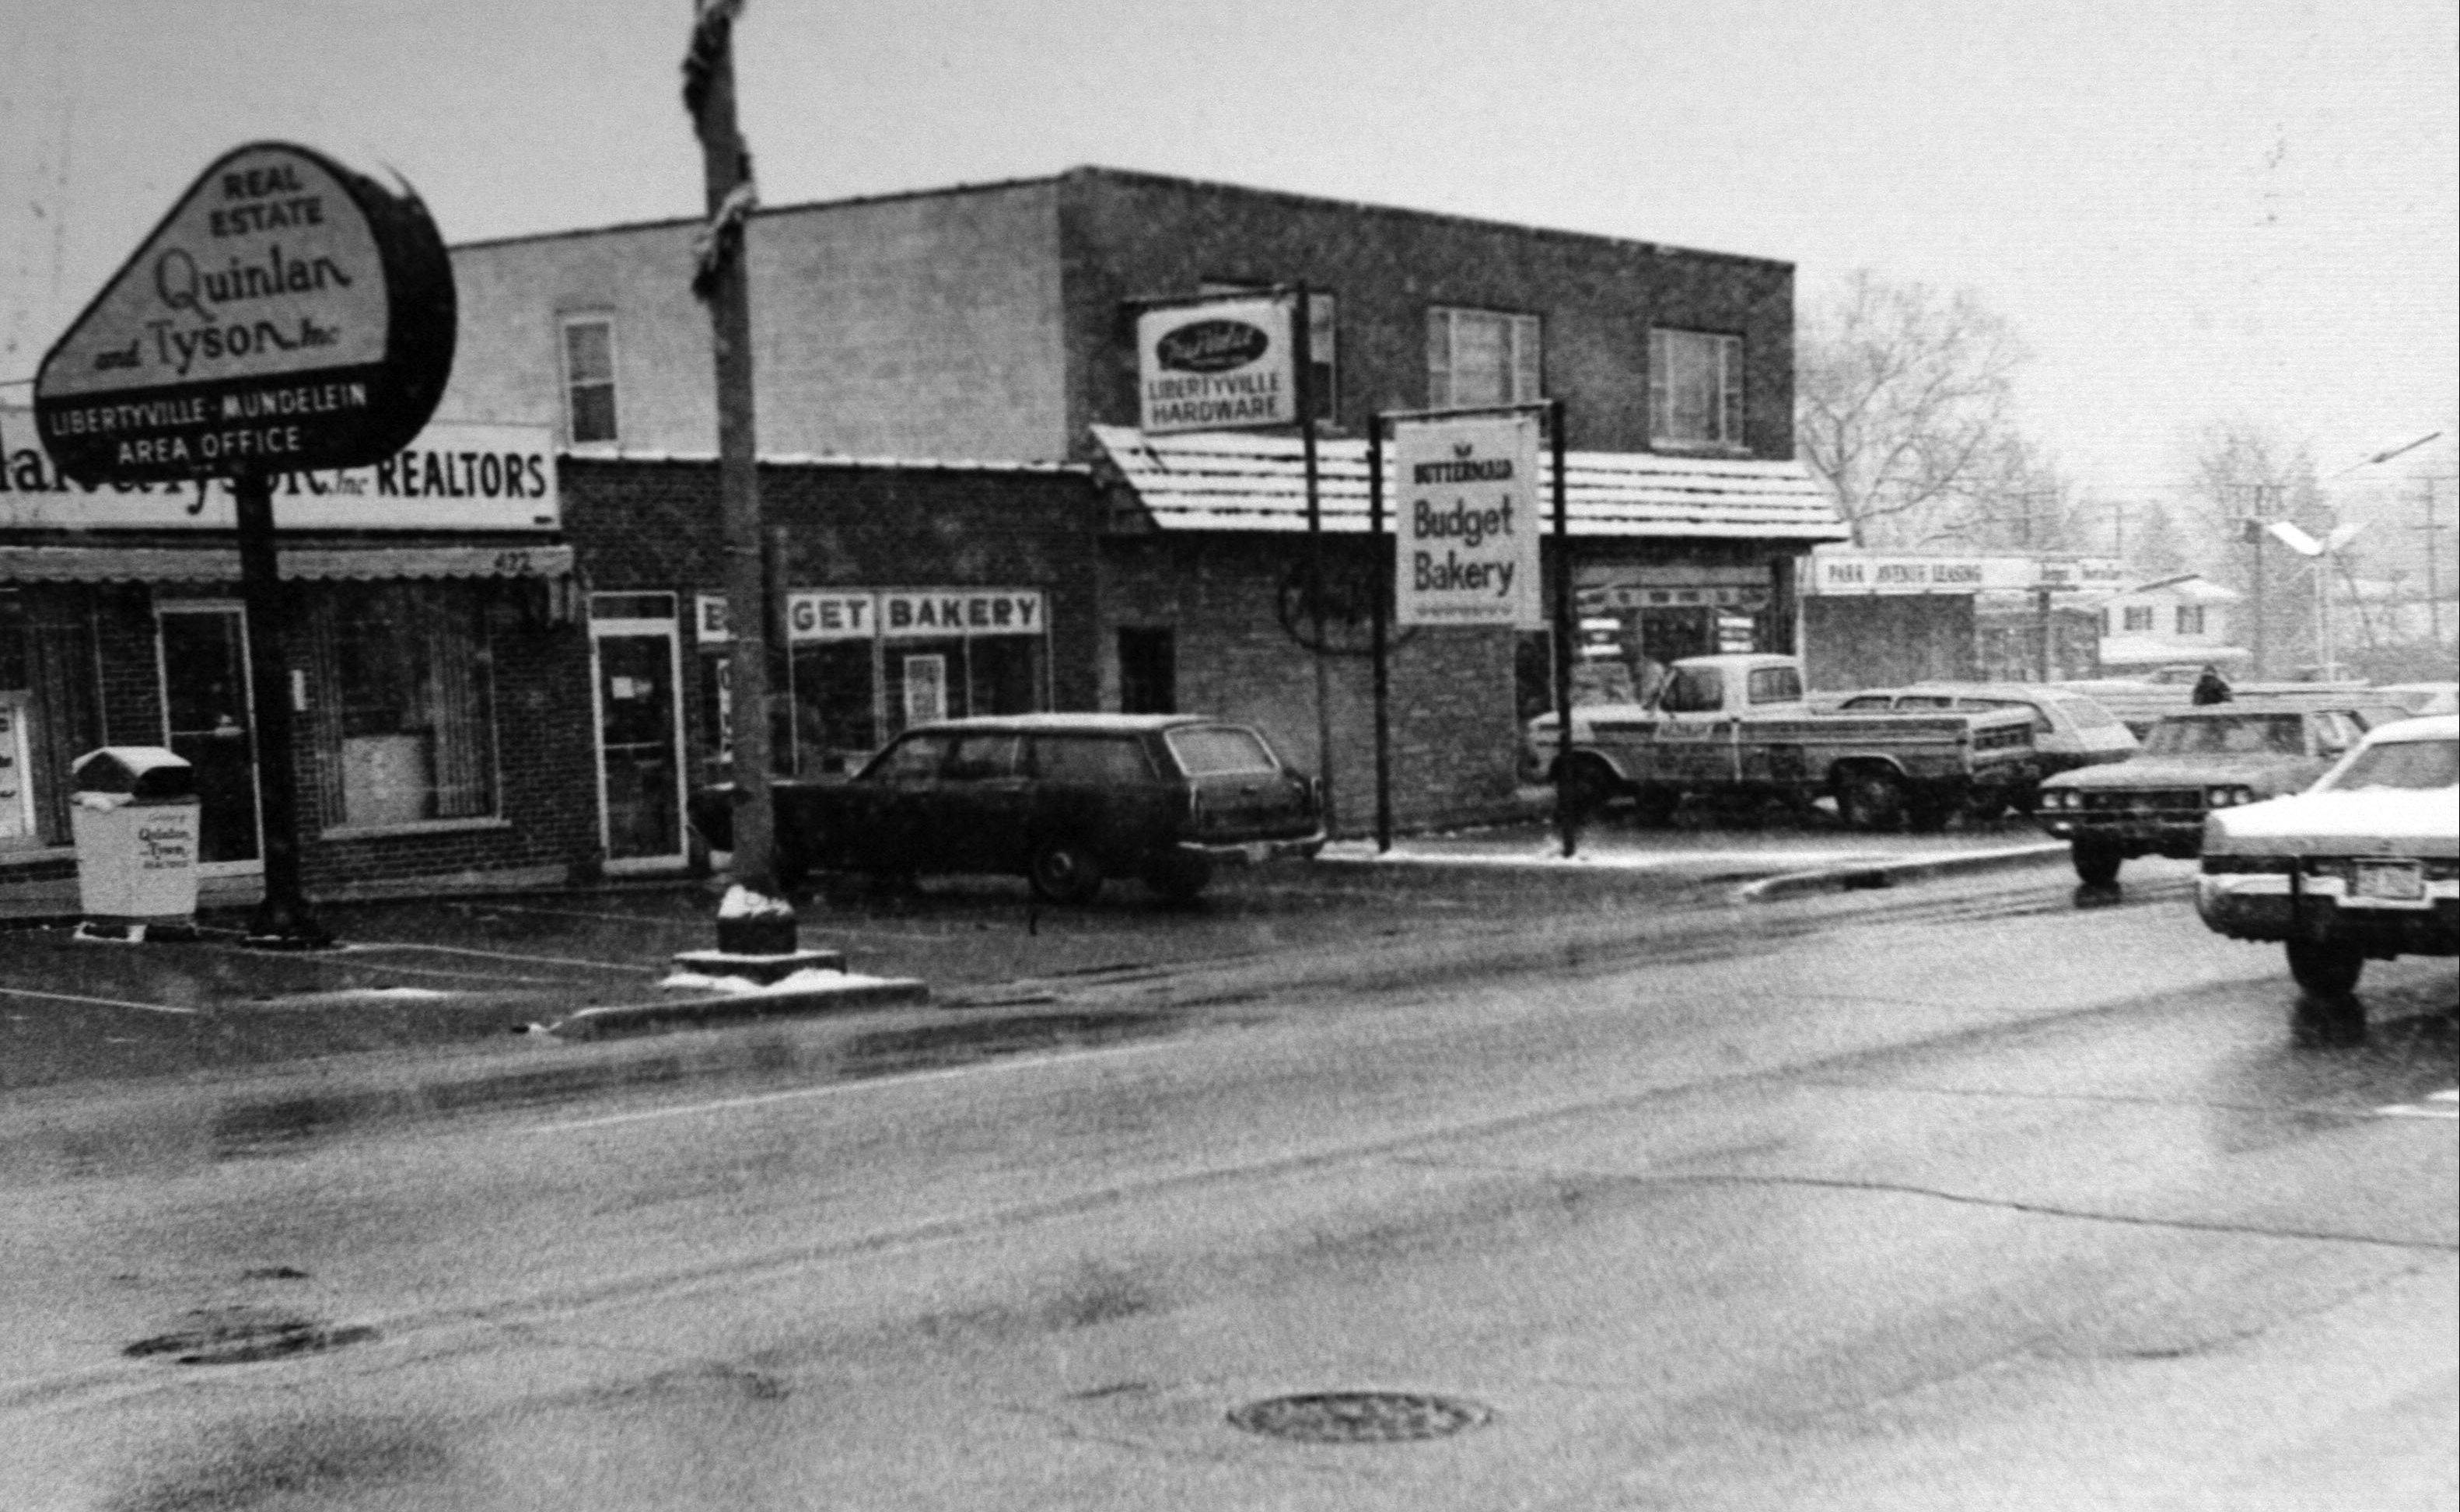 The Libertyville True Value hardware store has been operated by the LeJeune family since 1967. This photo is from the 1970s.